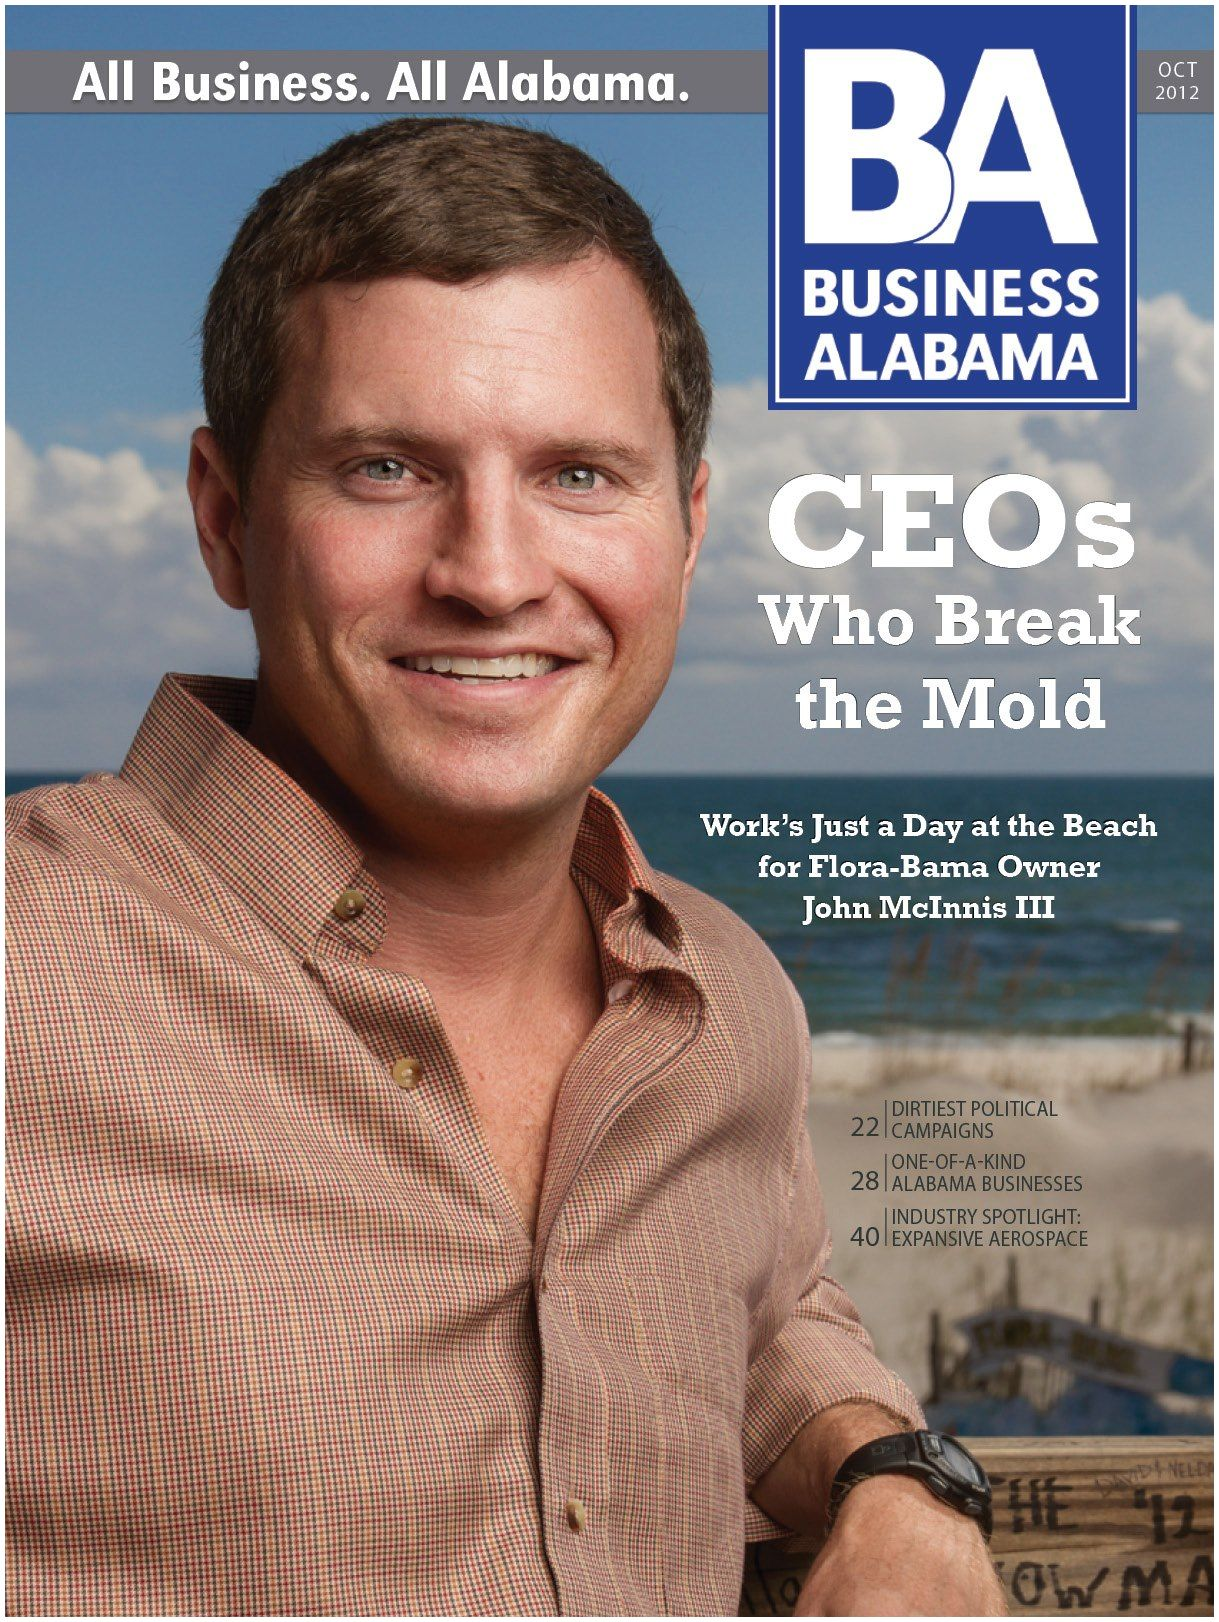 Business Alabama Magazine John Mcinnis for Business Alabama Magazine — Matthew Coughlin